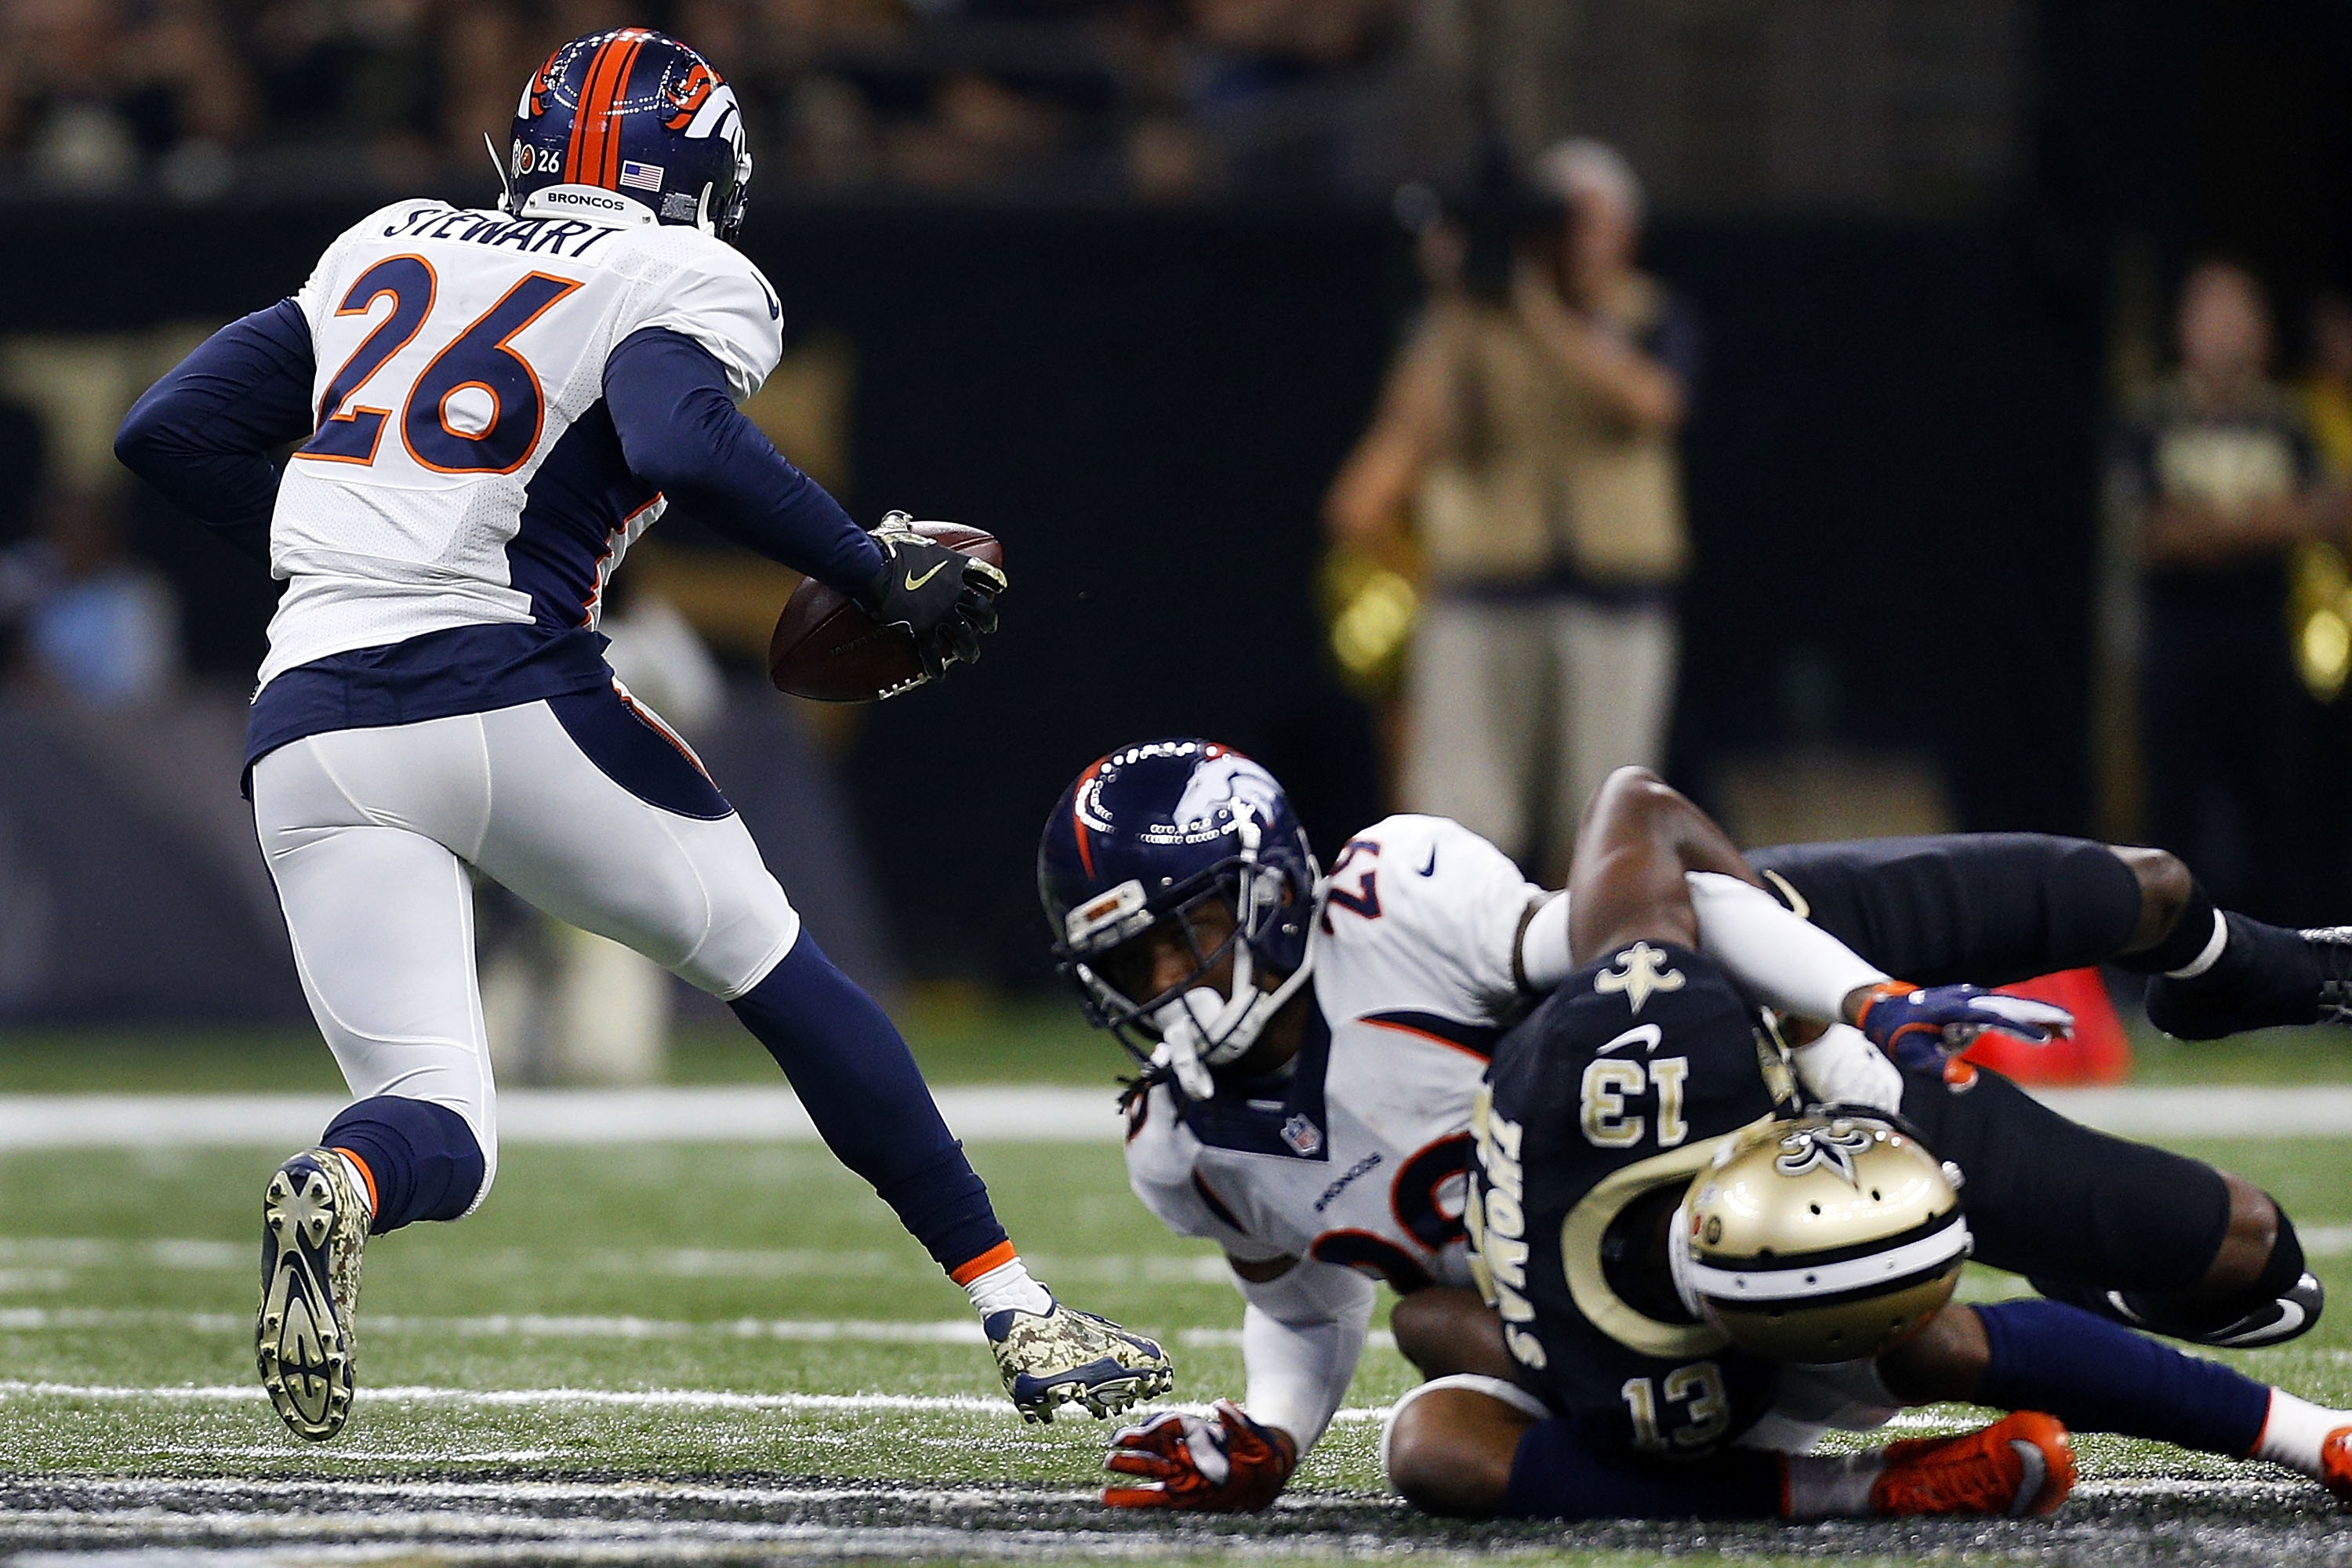 Darian Stewart #26 of the Denver Broncos returns an interception during the first half of a game against the New Orleans Saints at the Mercedes-Benz Superdome on November 13, 2016 in New Orleans, Louisiana. (credit: Jonathan Bachman/Getty Images)